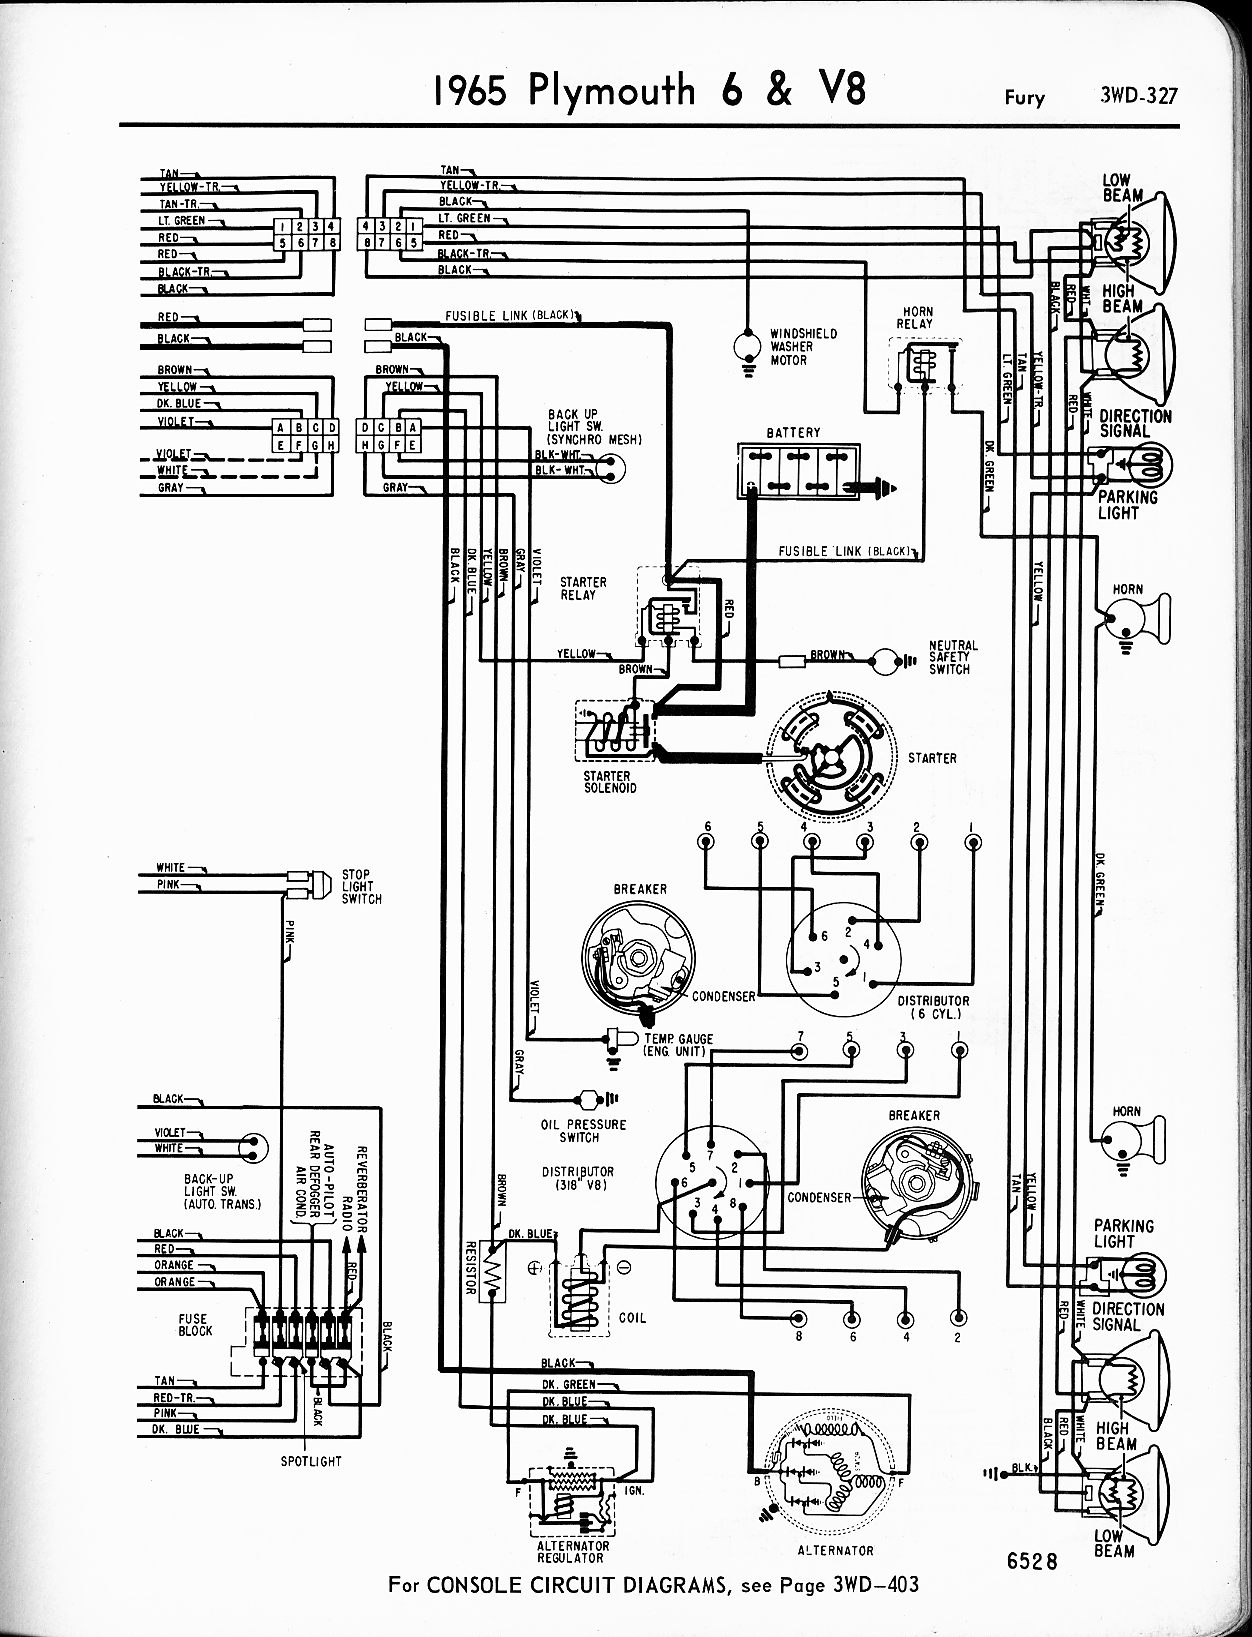 1955 Chevy Truck Wiring Diagram Moreover 1955 Chevy Ignition Switch on 1957 chevrolet ignition diagram, 1957 horn diagram, 1957 chevy fuse box diagram, ignition switch schematic diagram, distributor wiring diagram,